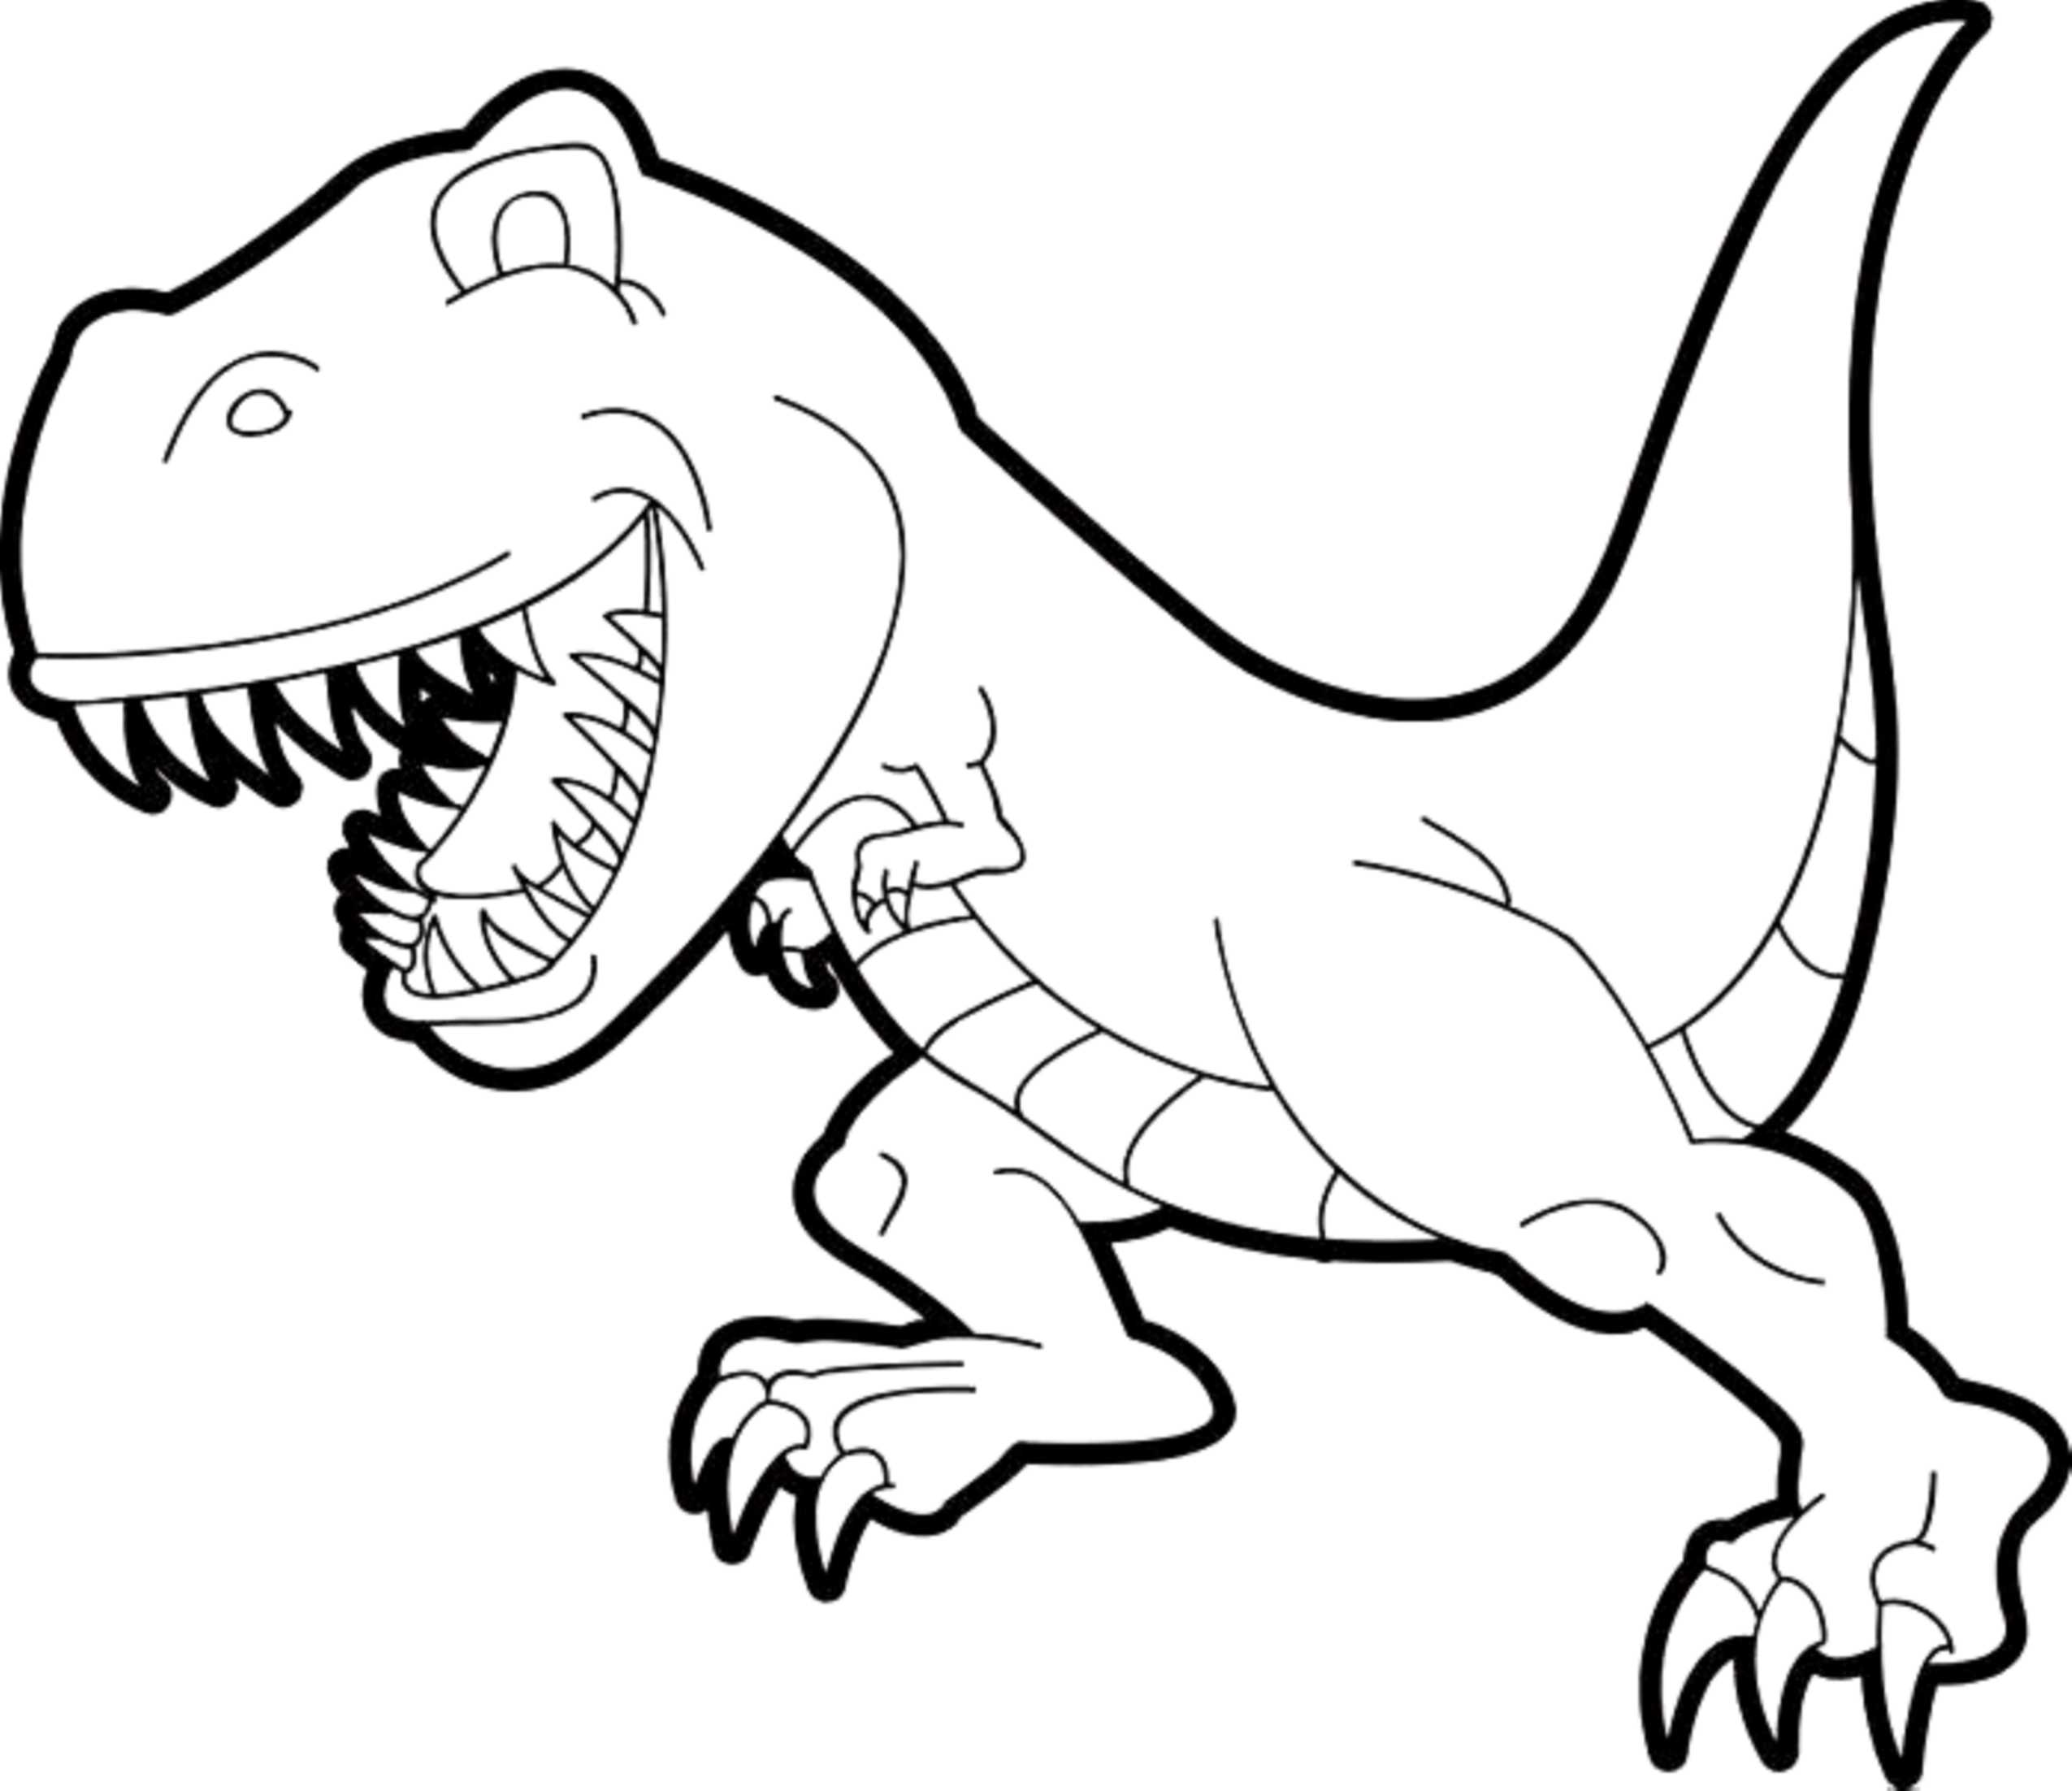 dino coloring page coloring pages from the animated tv series dinosaur train dino coloring page